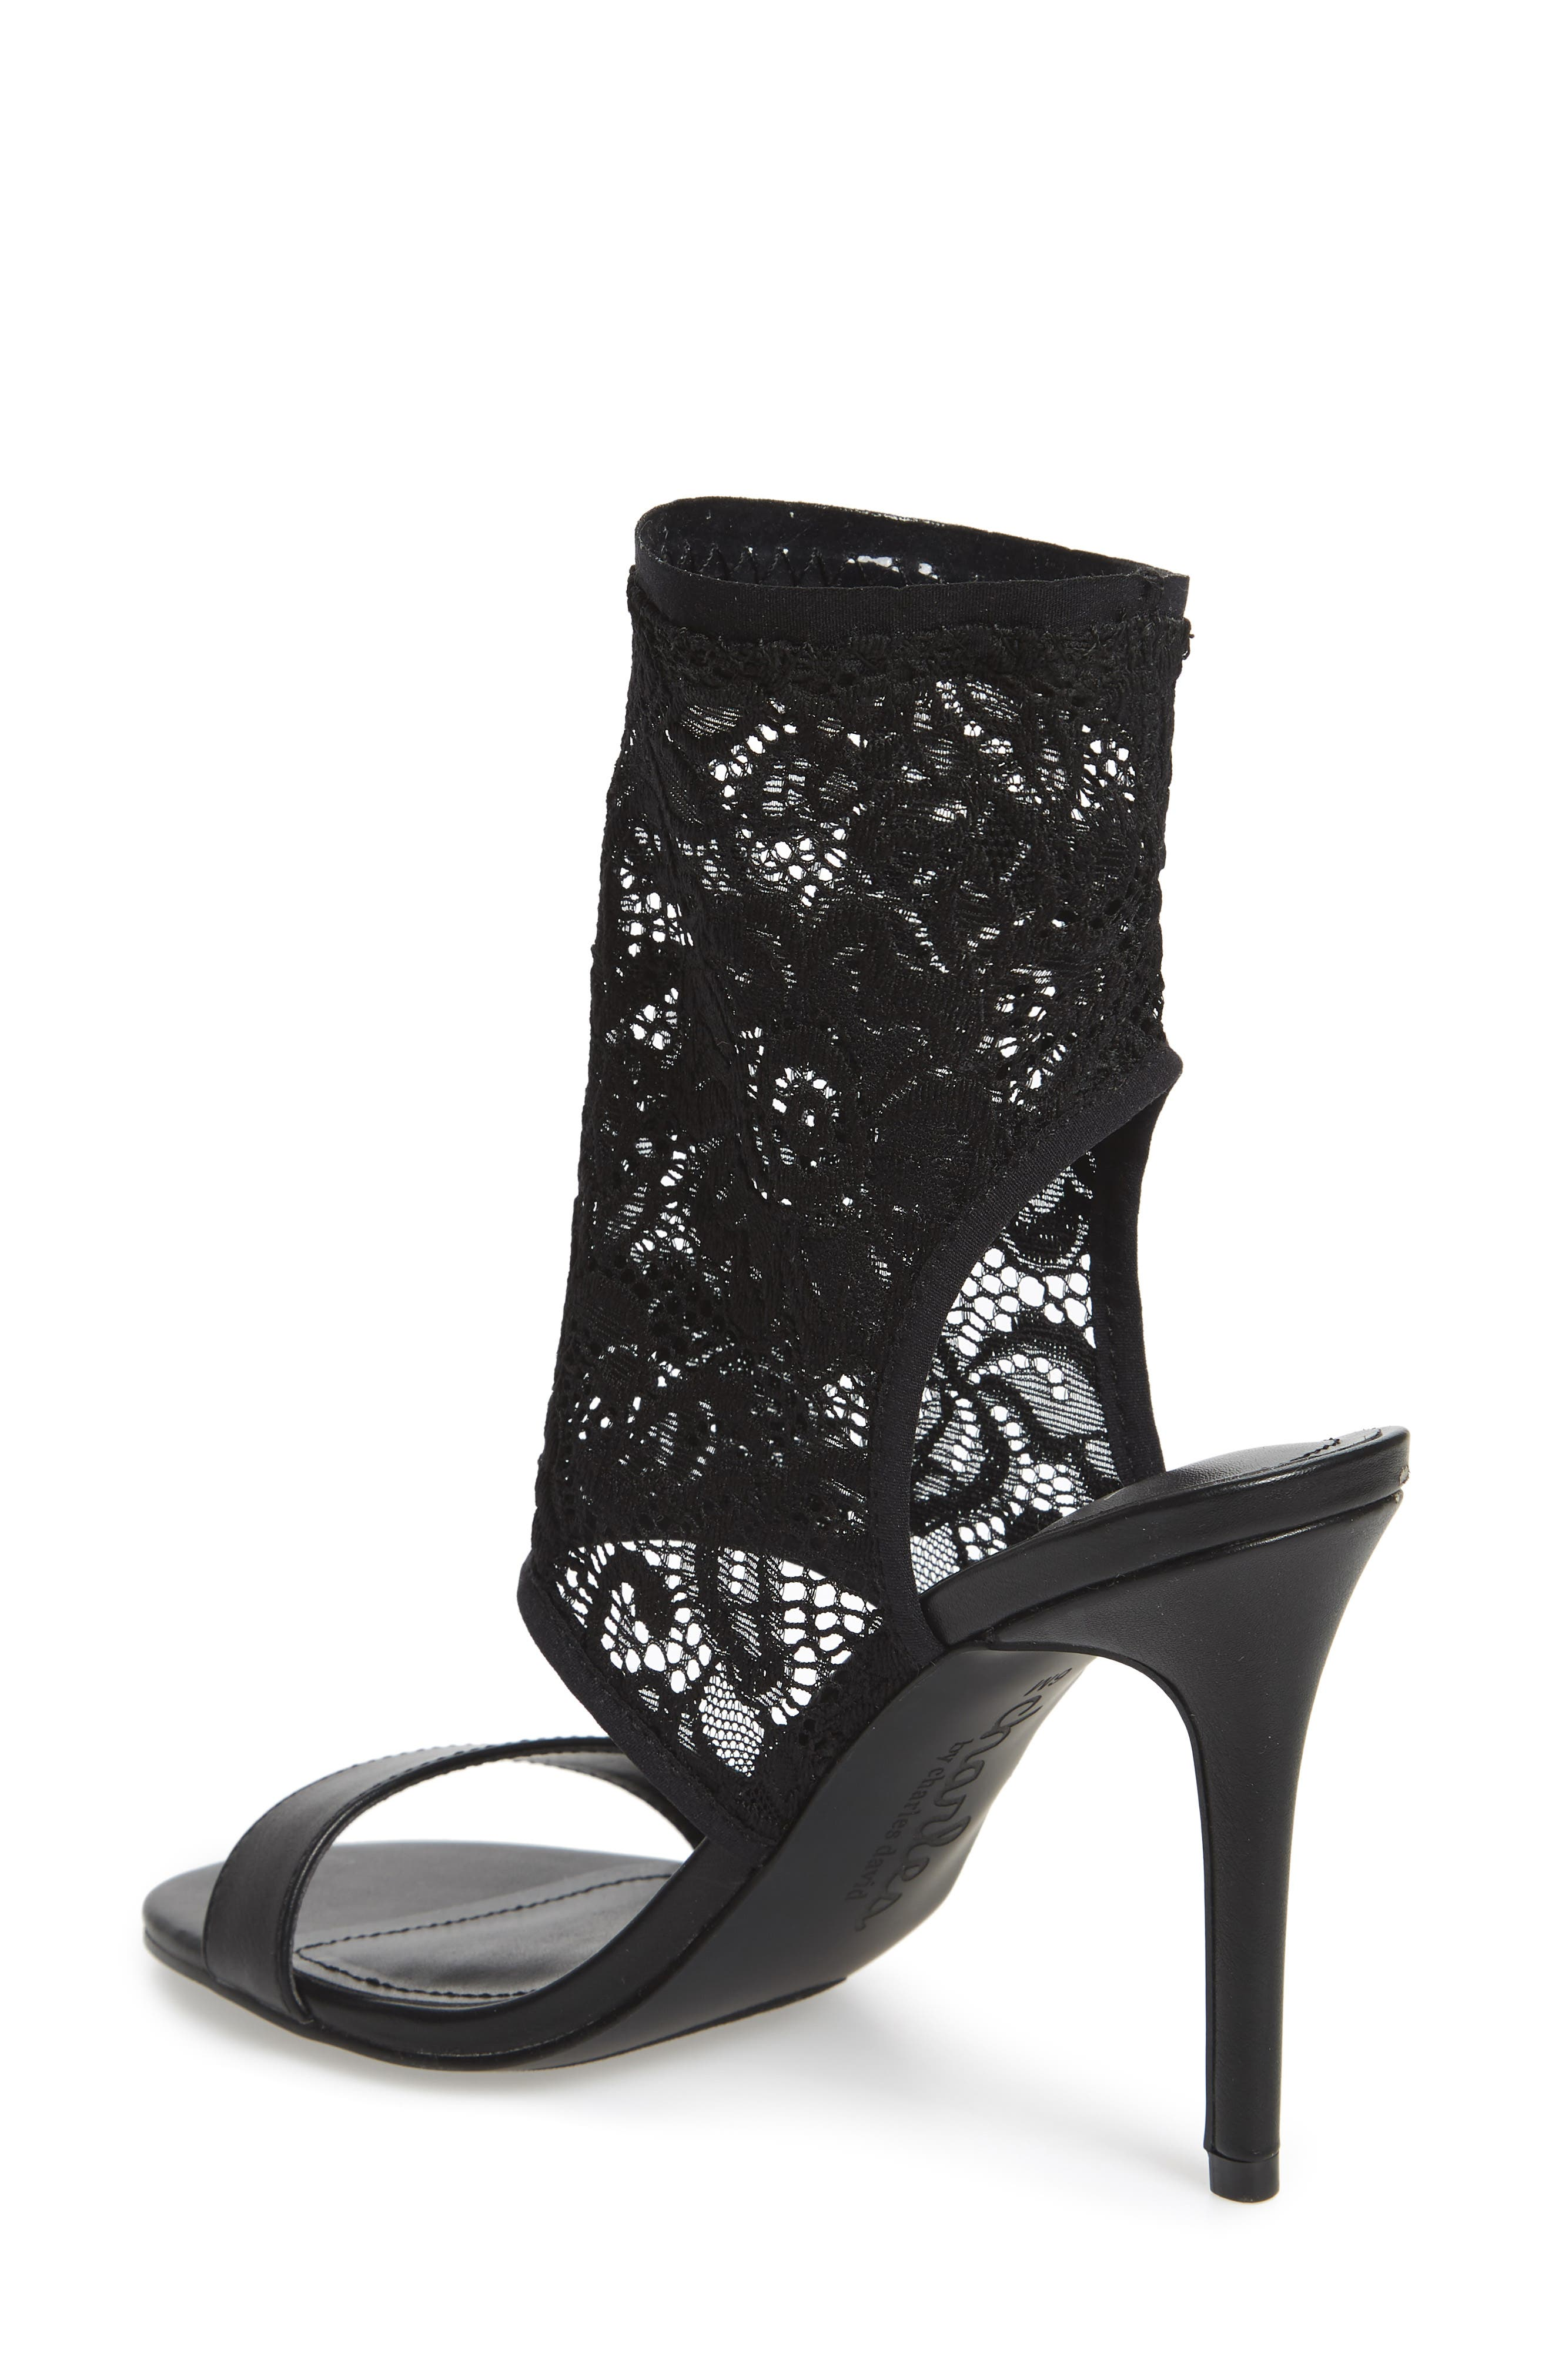 Remote Sock Cuff Sandal,                             Alternate thumbnail 2, color,                             Black Fabric